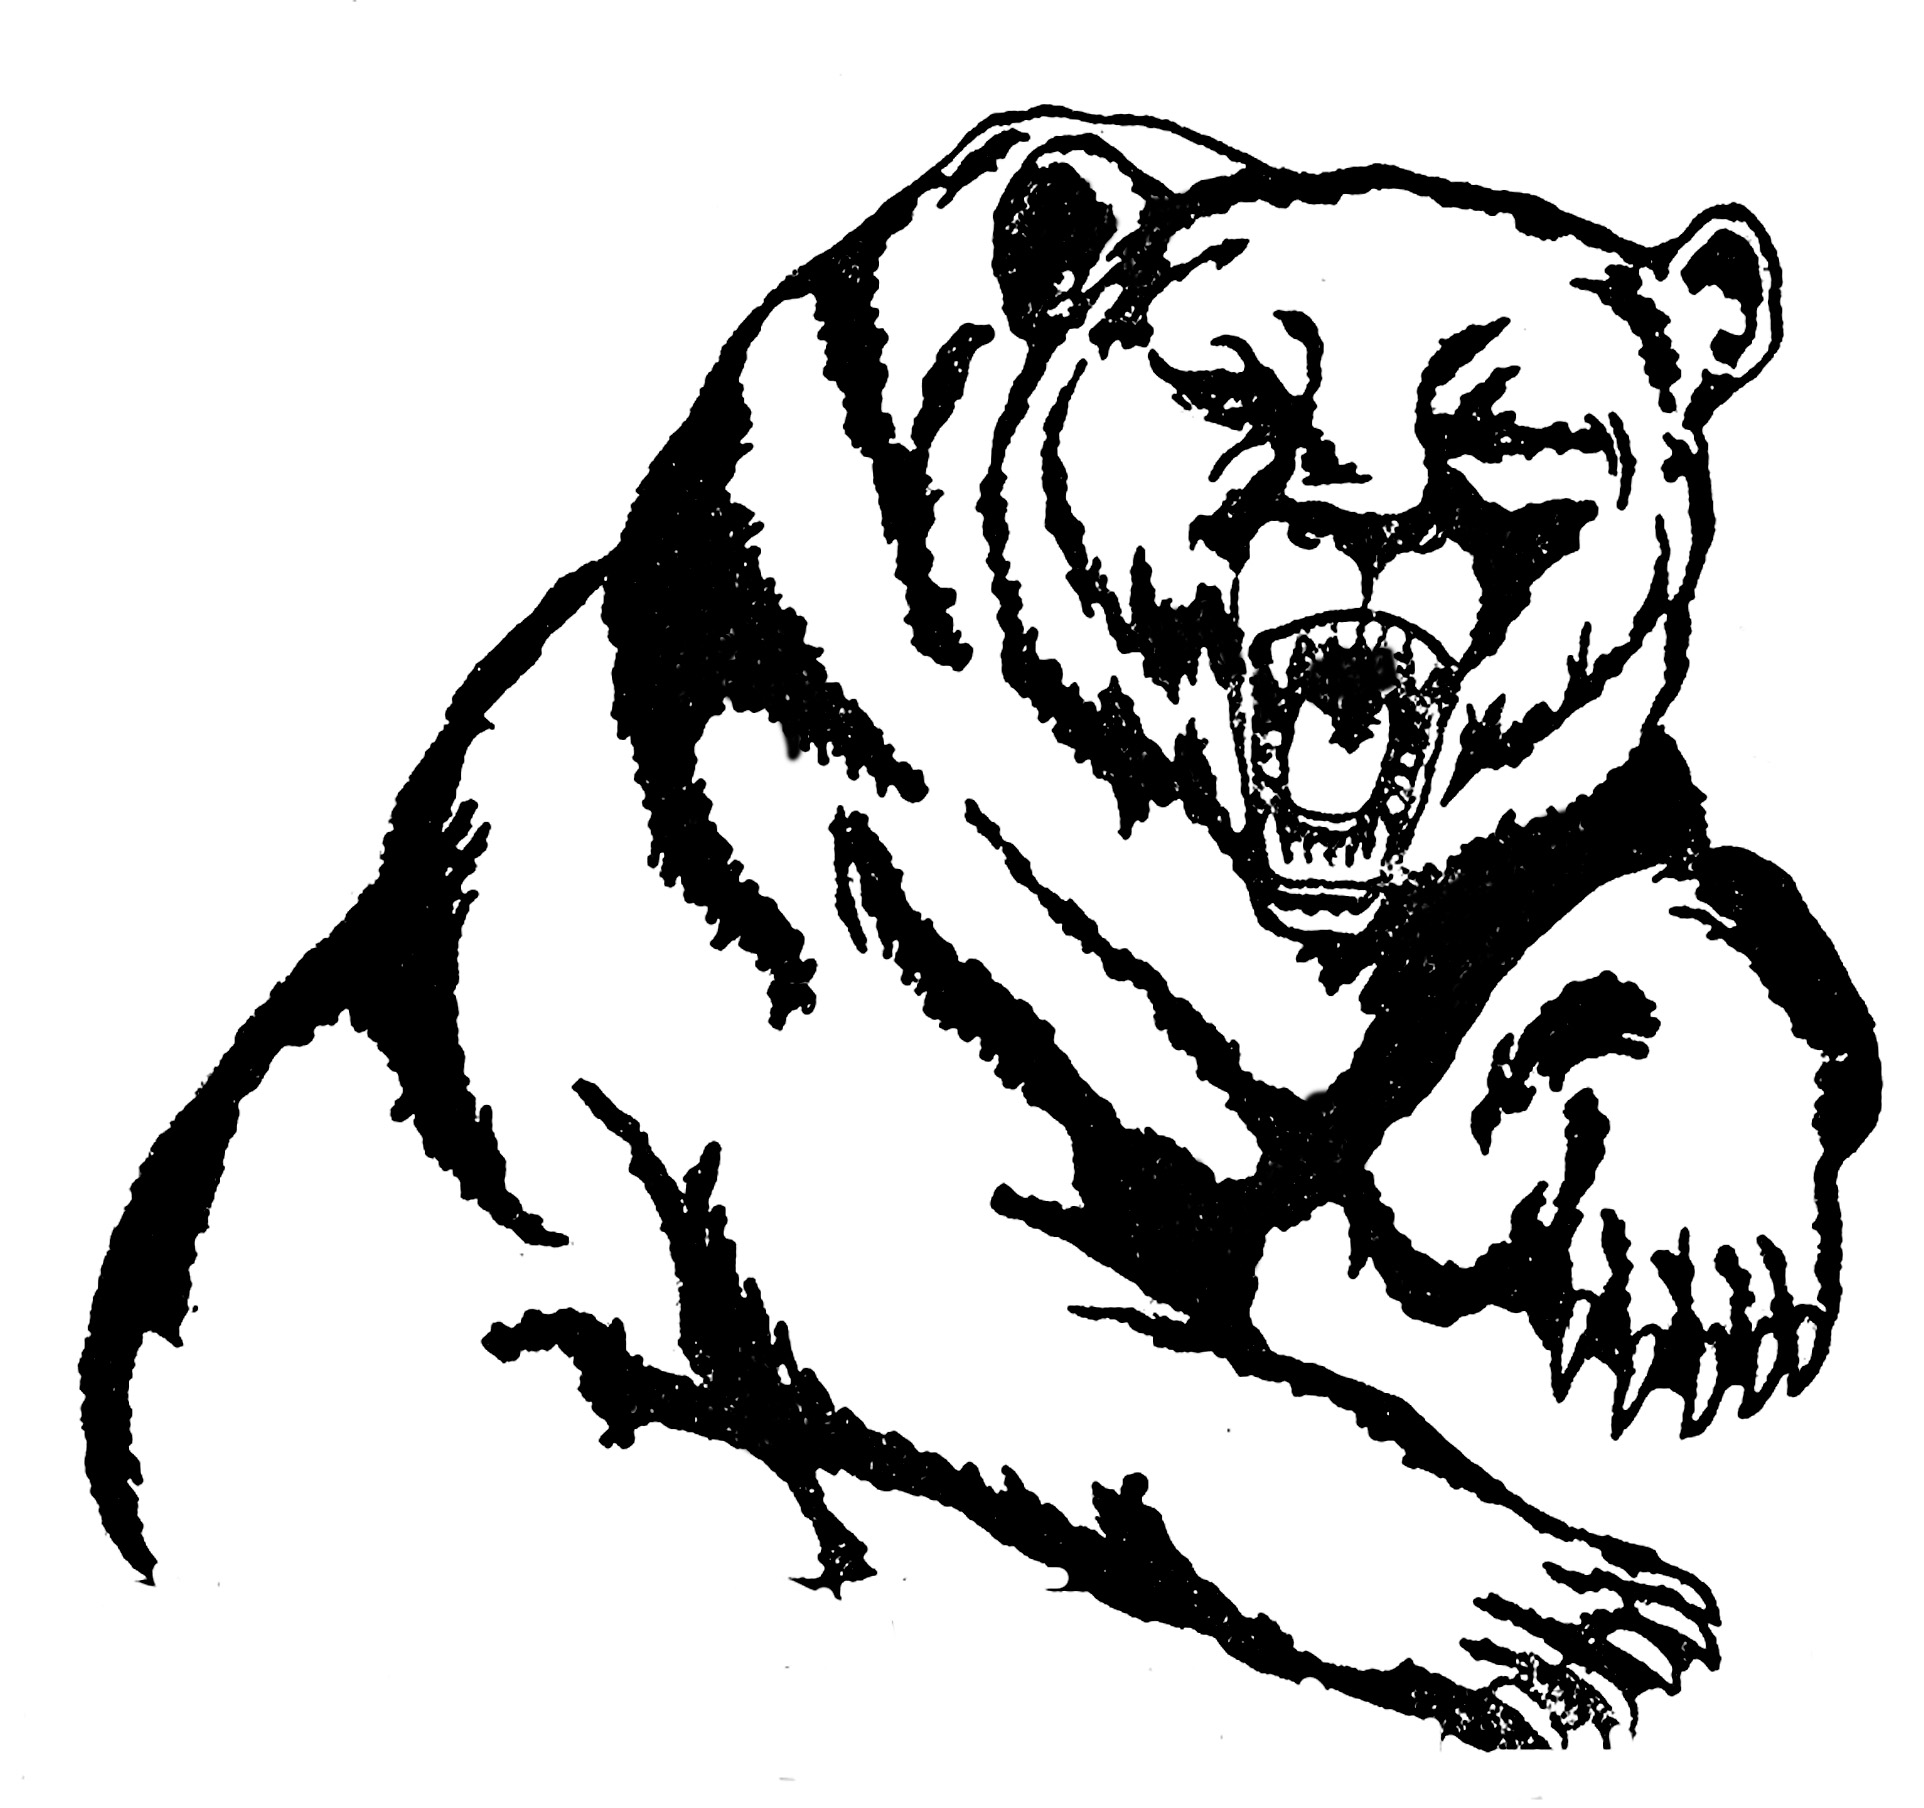 Cute grizzly bear clipart - photo#20